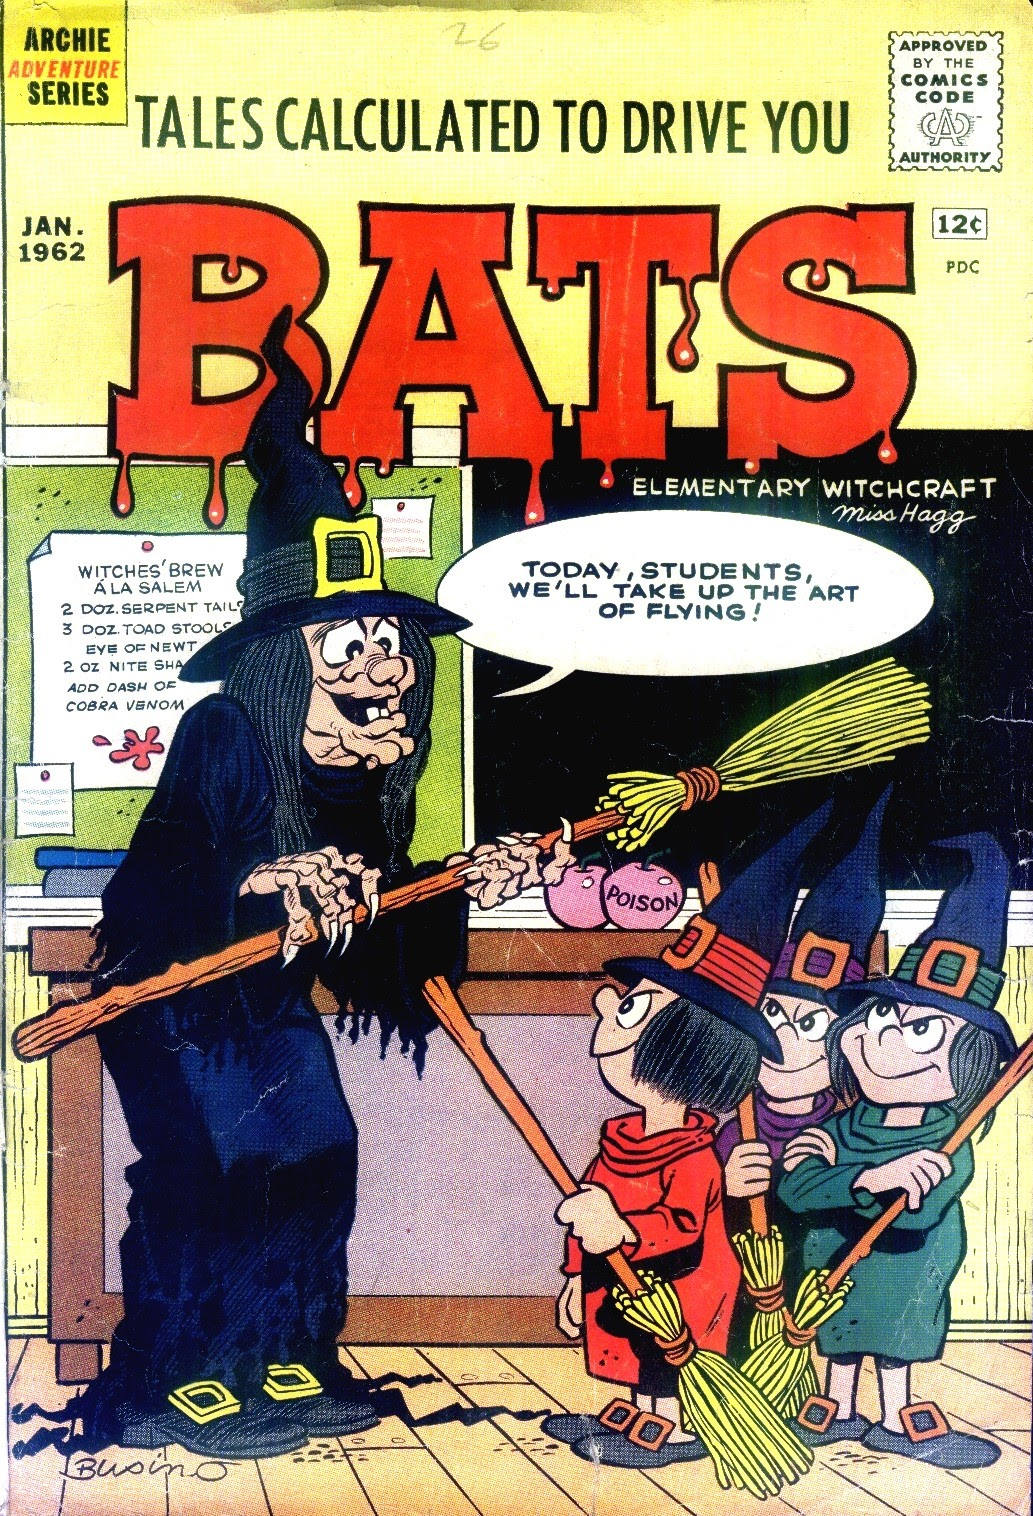 Read online Tales Calculated to Drive You Bats comic -  Issue #2 - 1